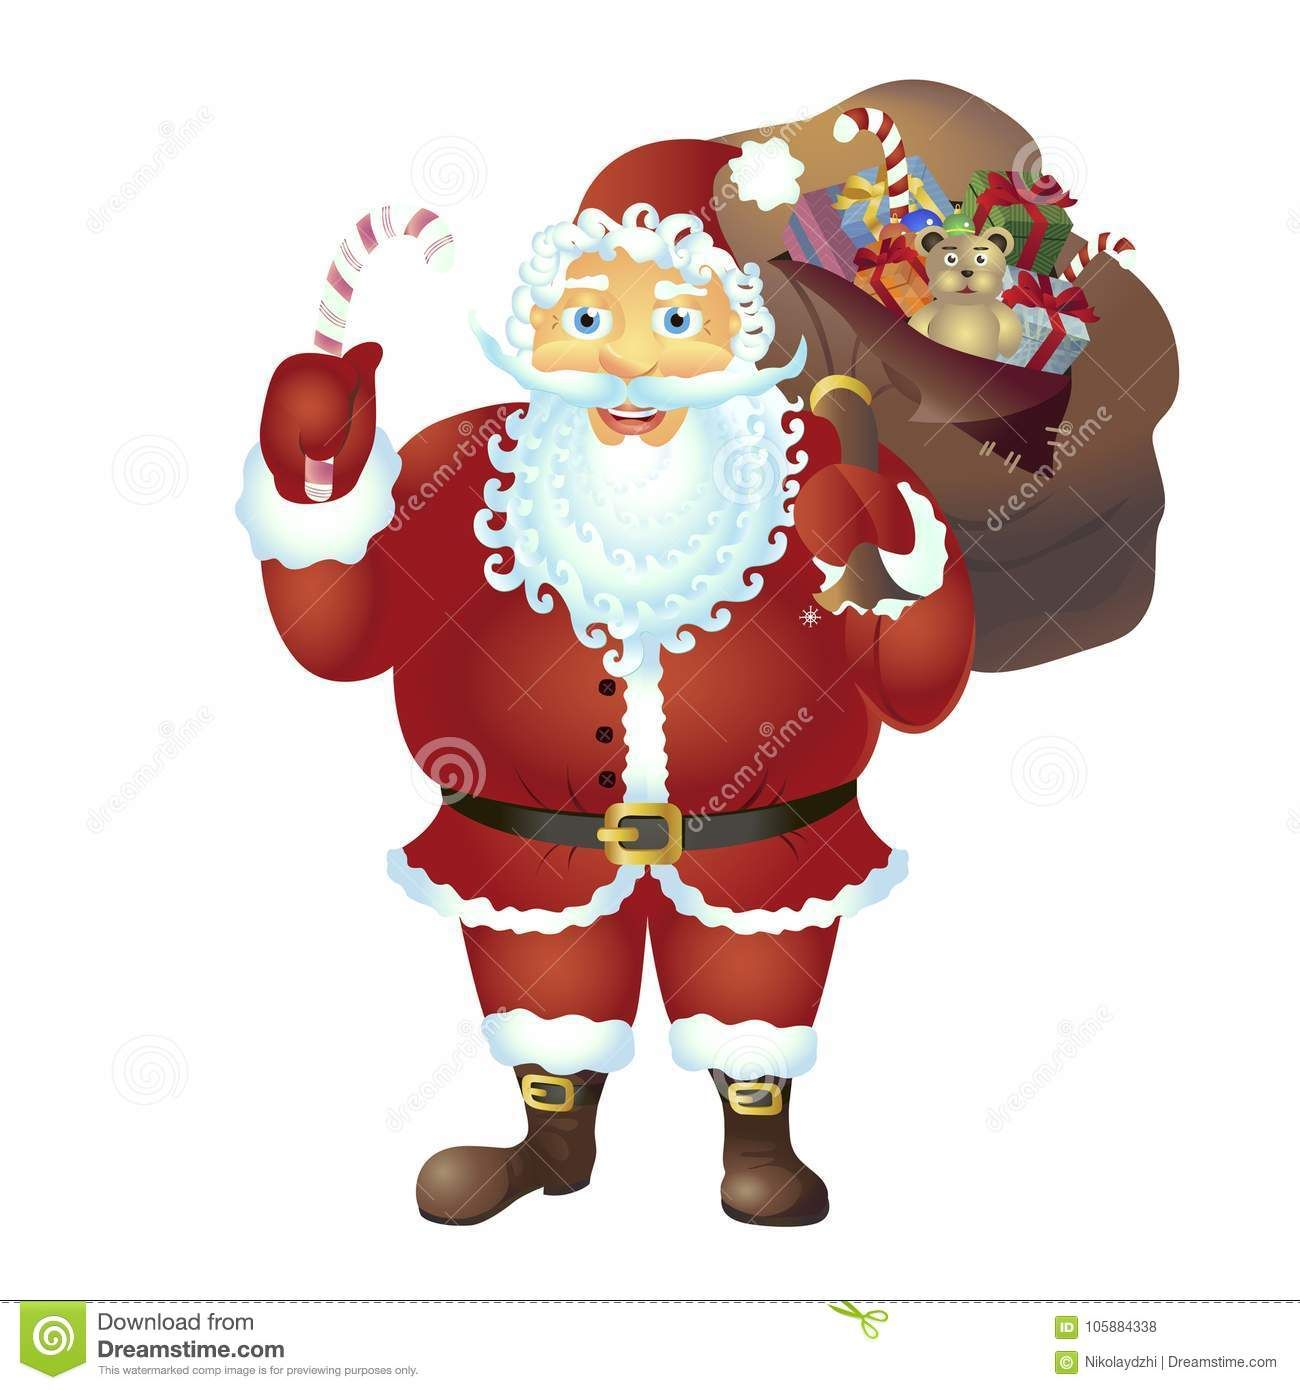 Santa Claus Holding A Candy Cane Isolated On White